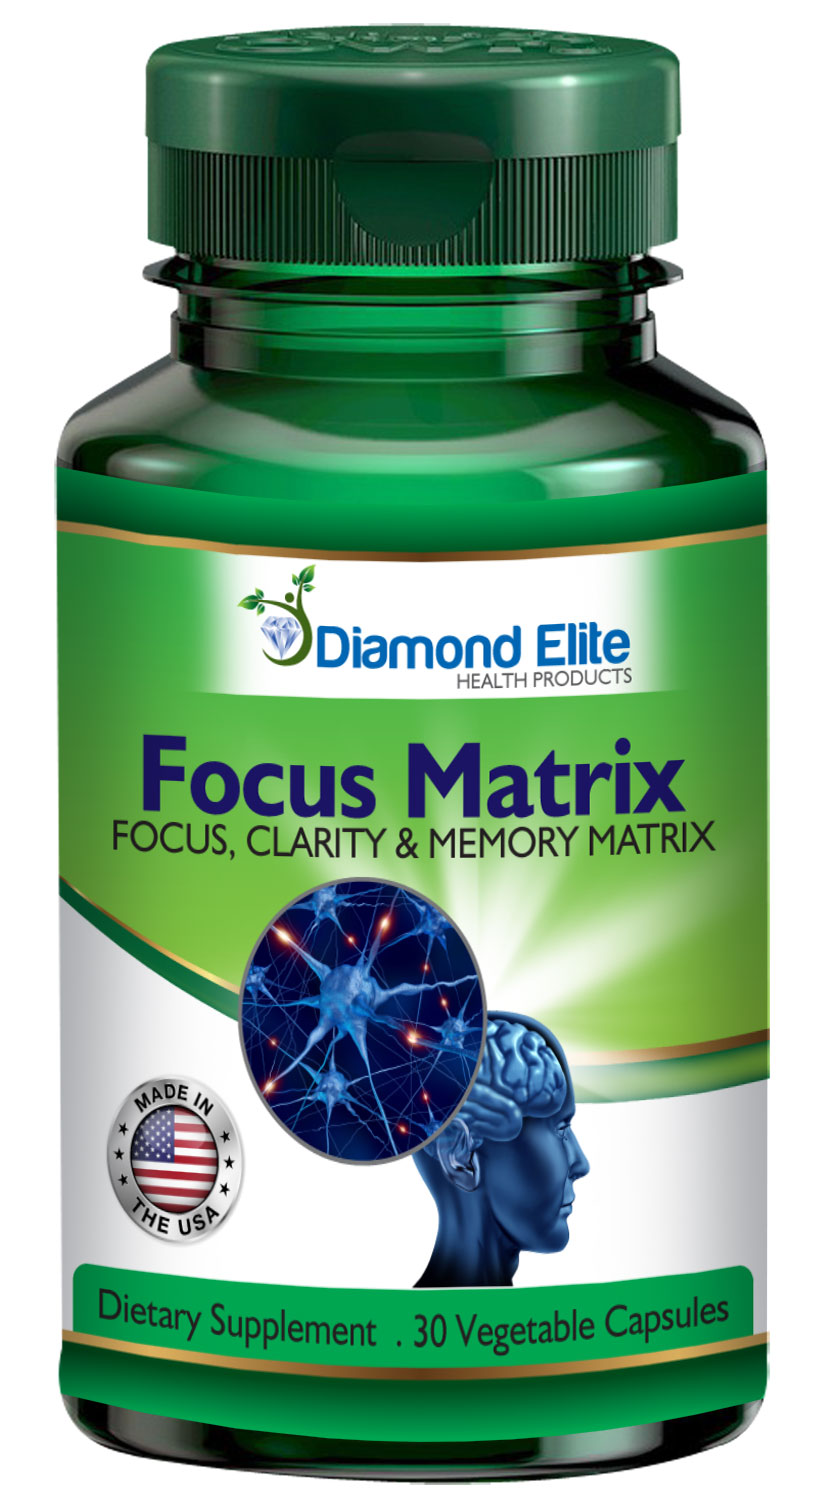 Focus Matrix